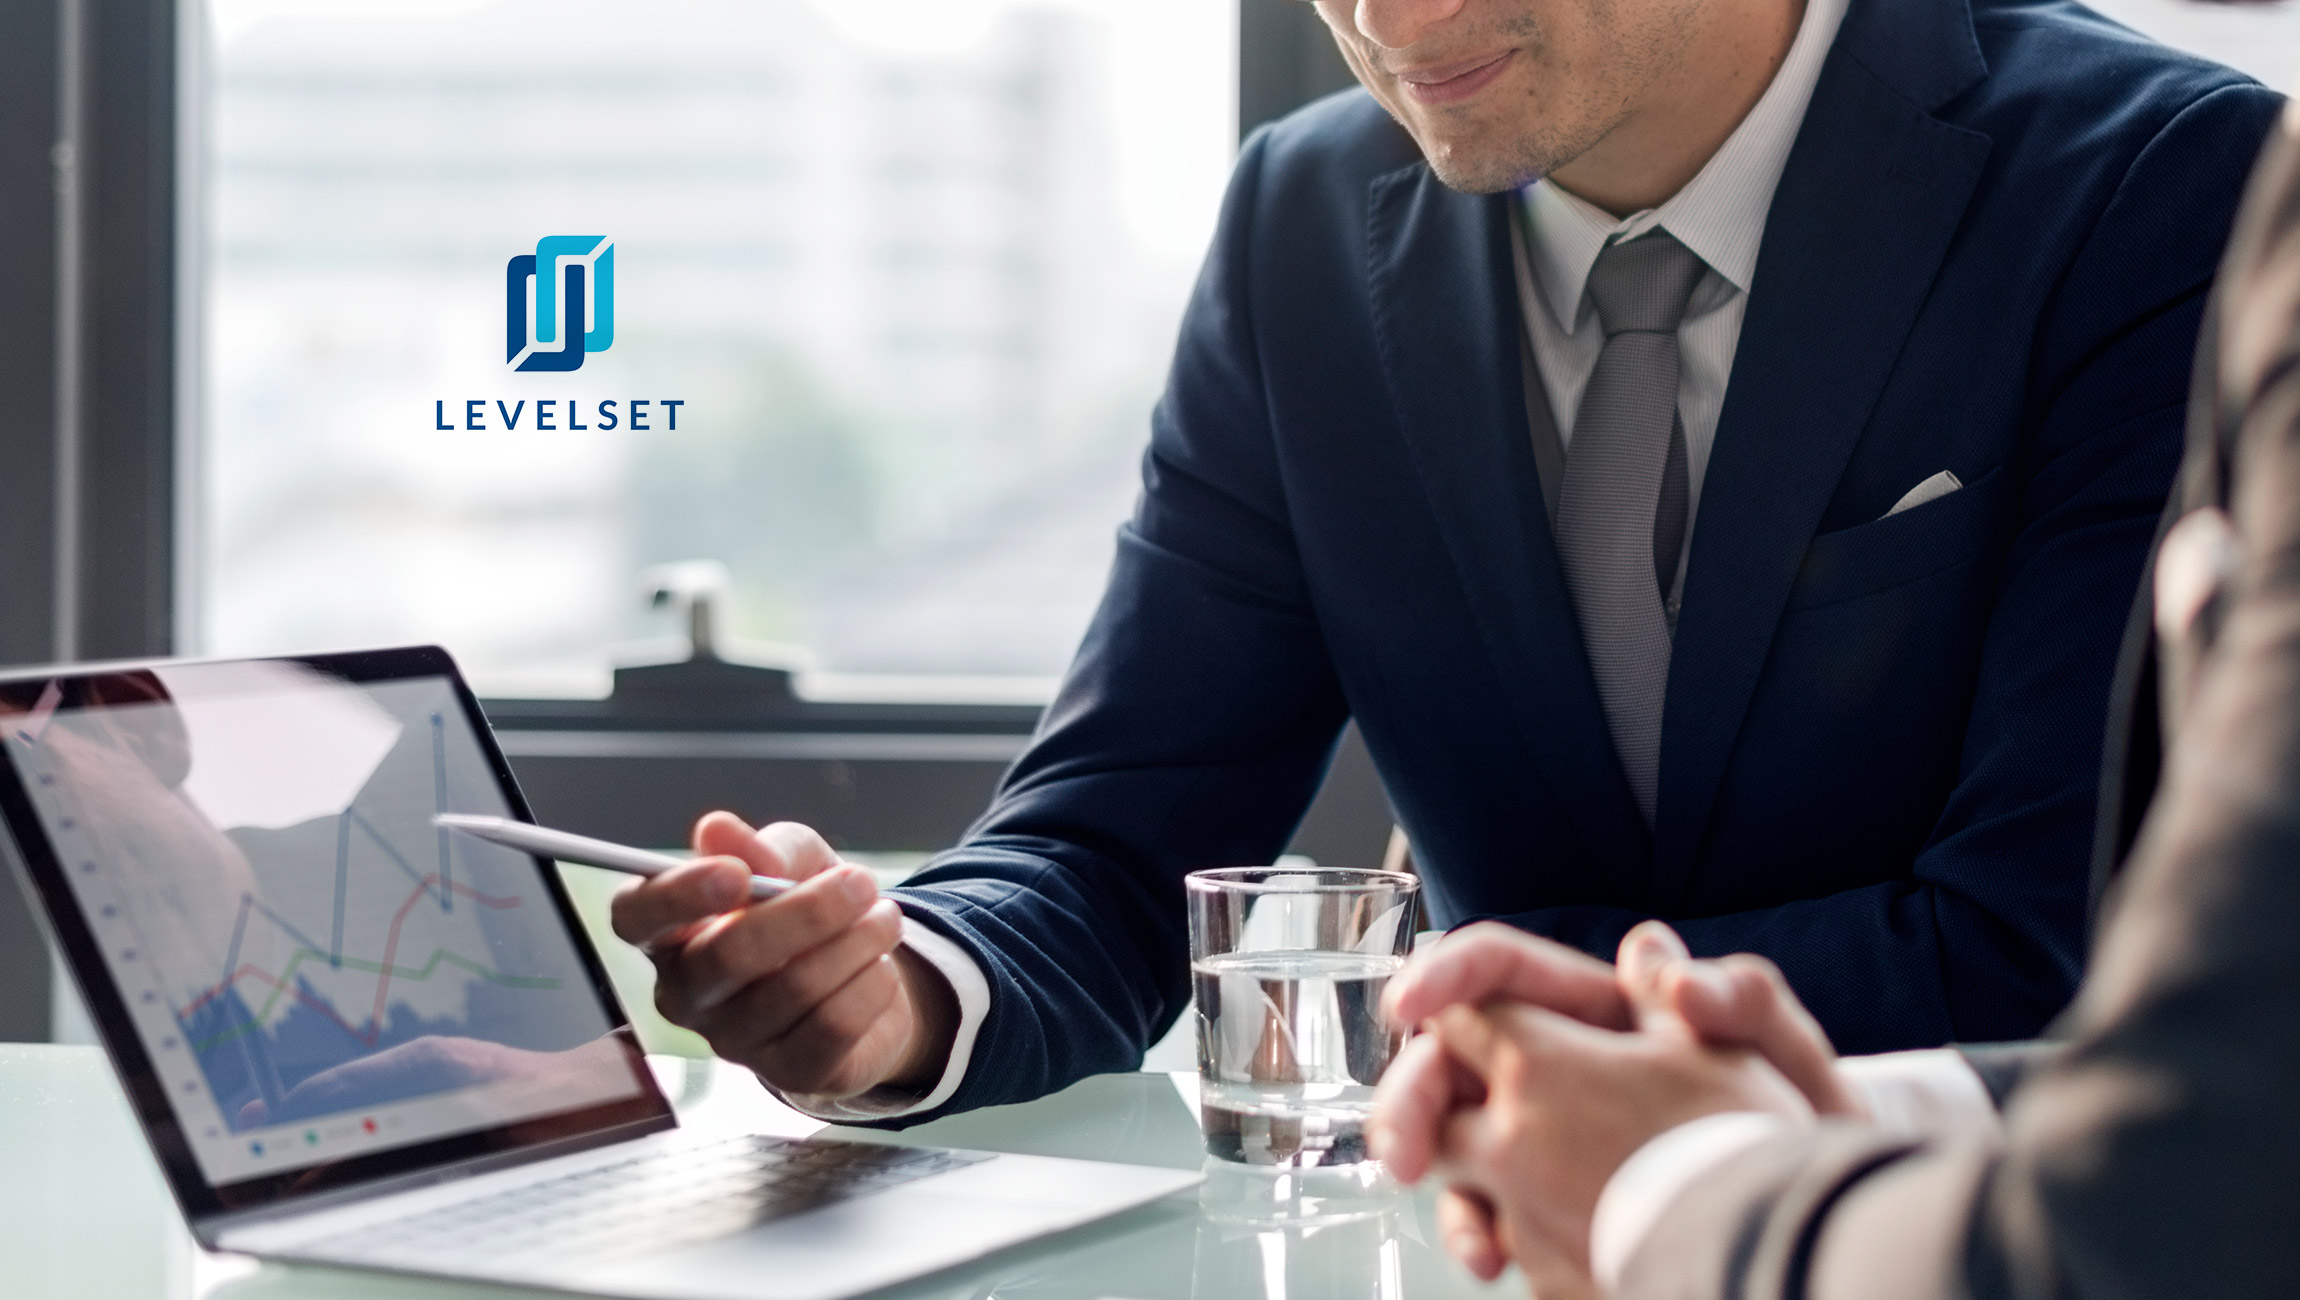 Levelset Introduces Sales Academy to Level Up Local Austin Tech Talent